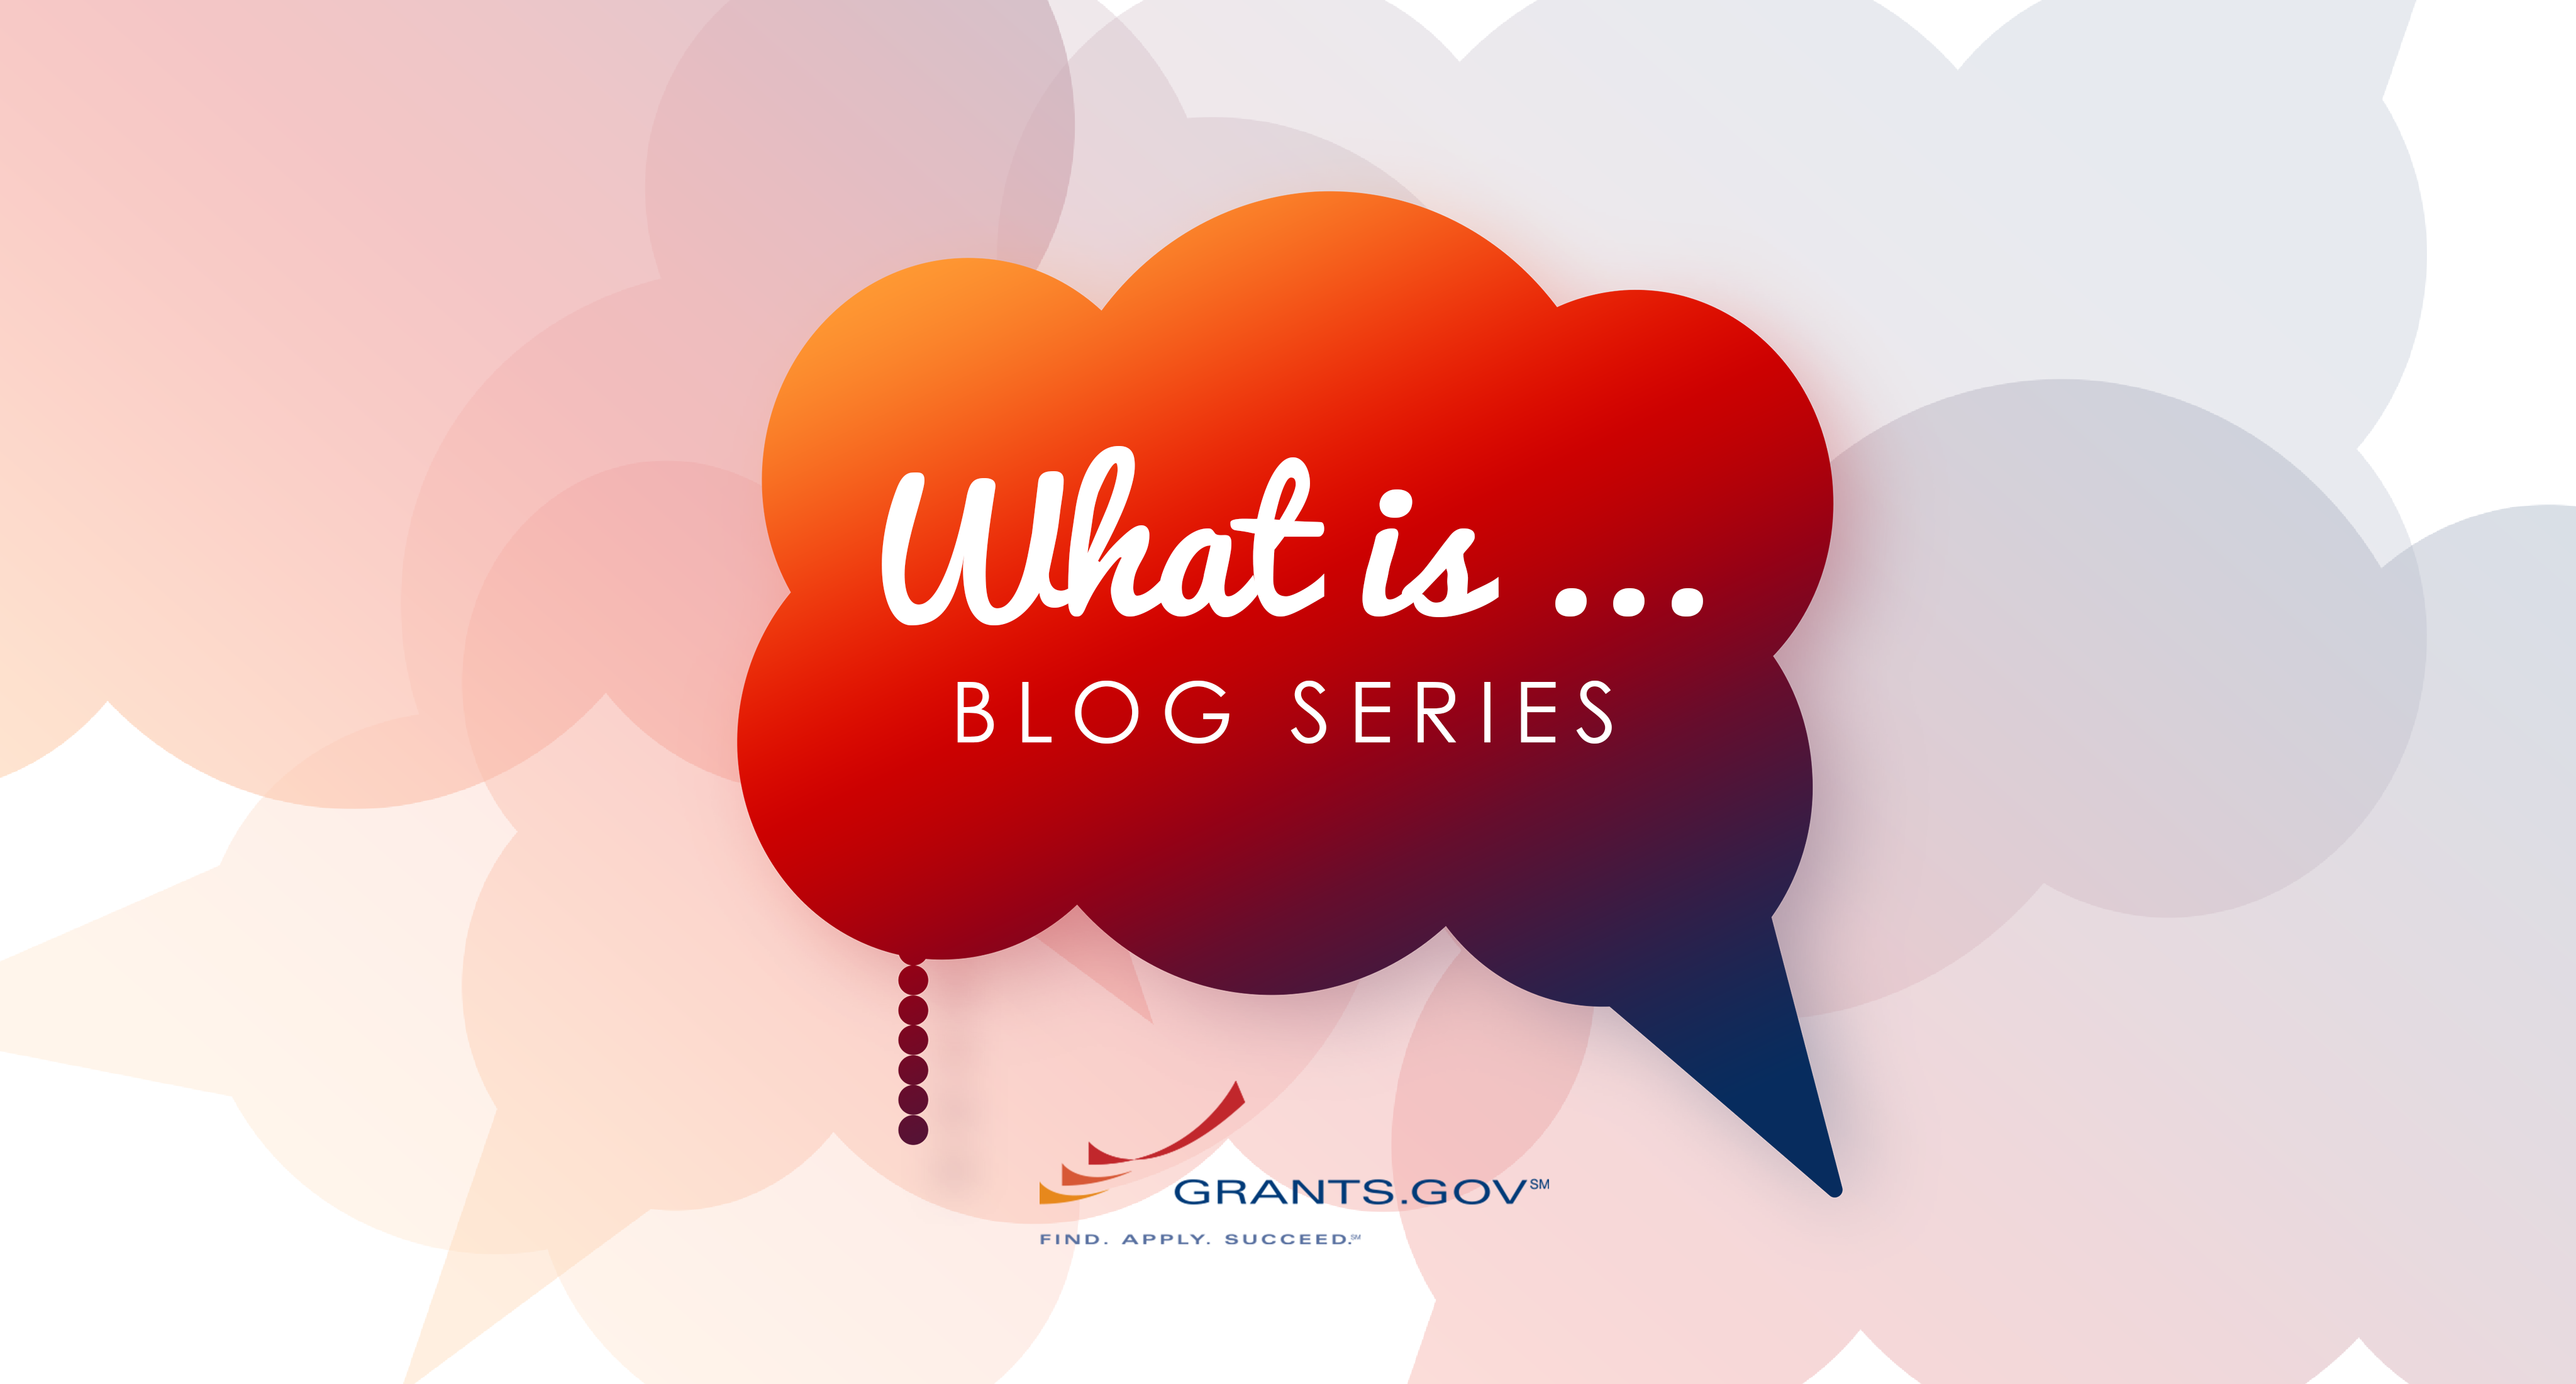 Grants.gov's What is... Blog Series